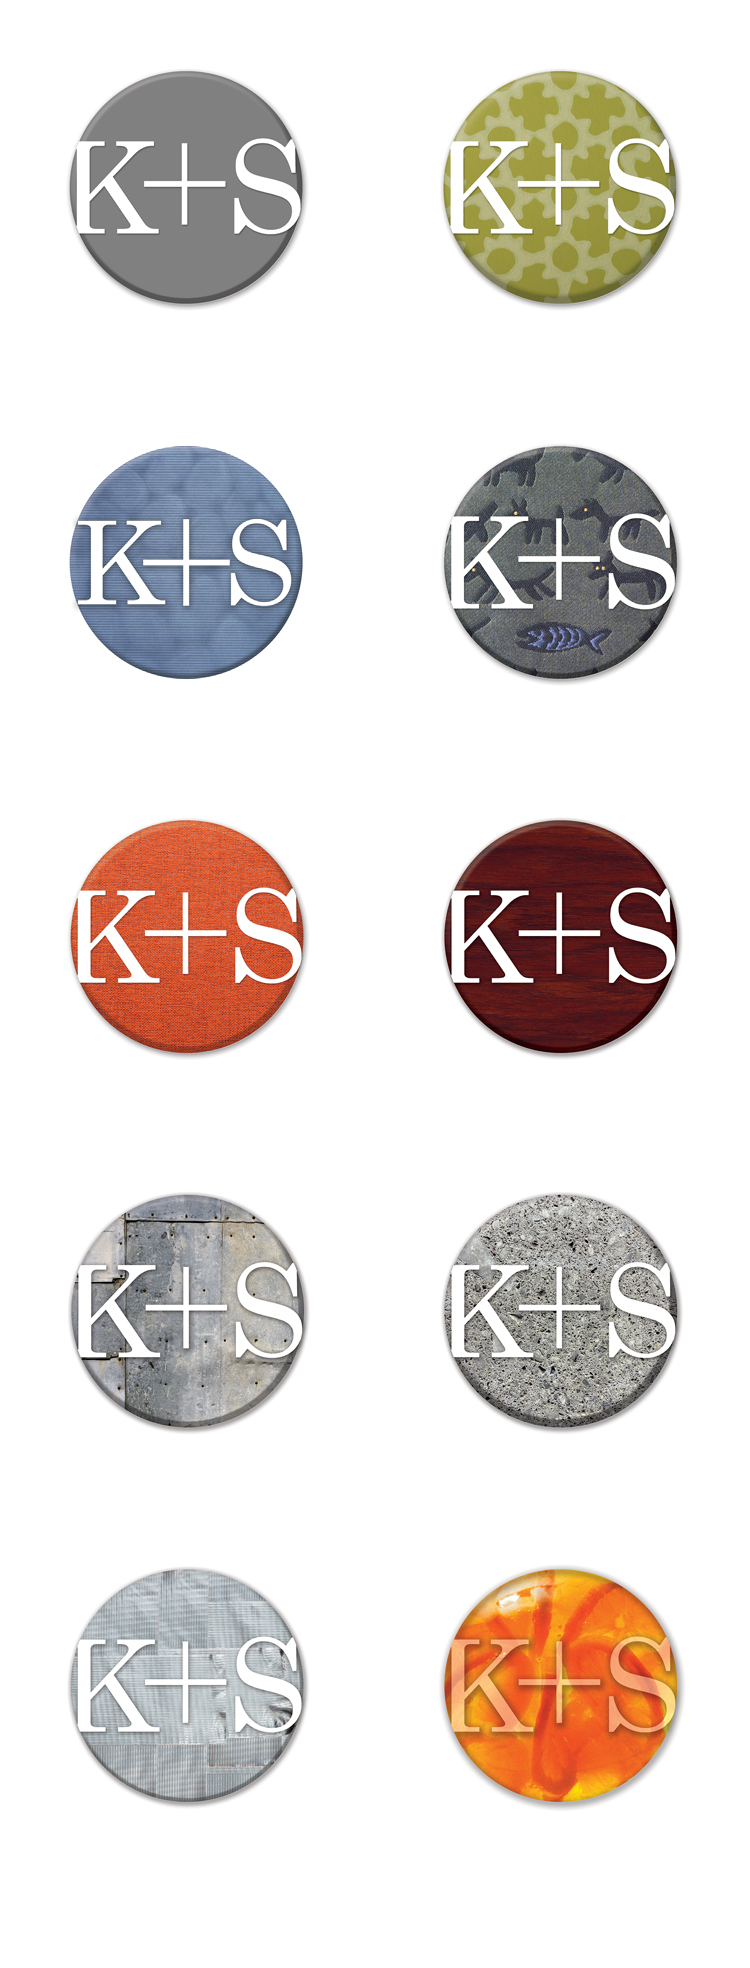 K+S Design is located in Scituate MA. For more information, call Kathleen 781.424.8585 or Suzanne 617.512.9880.